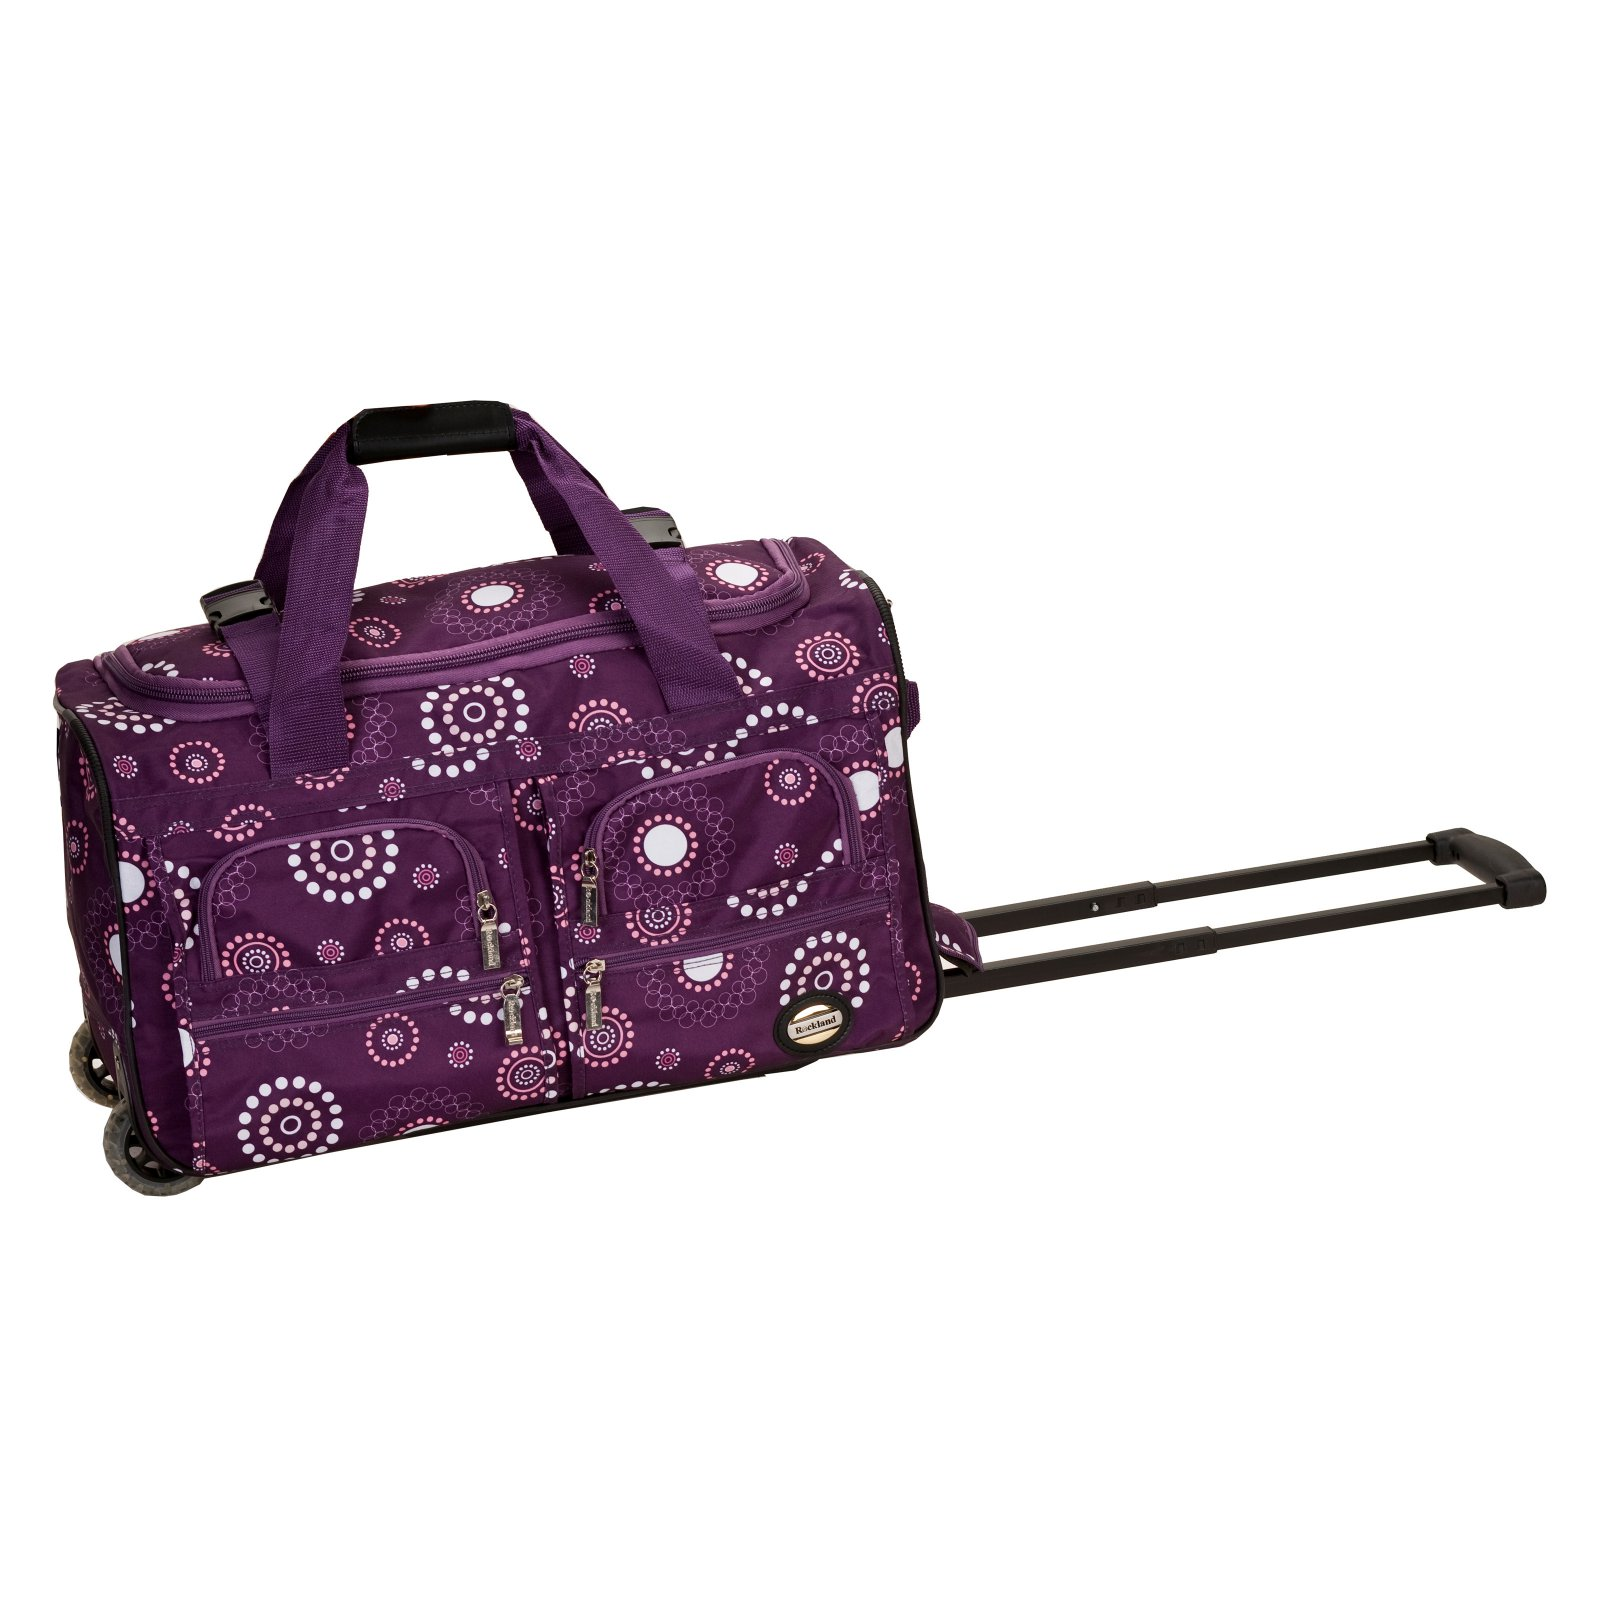 "Rockland Luggage 22"" Rolling Duffle Bag by Fox Luggage Inc"